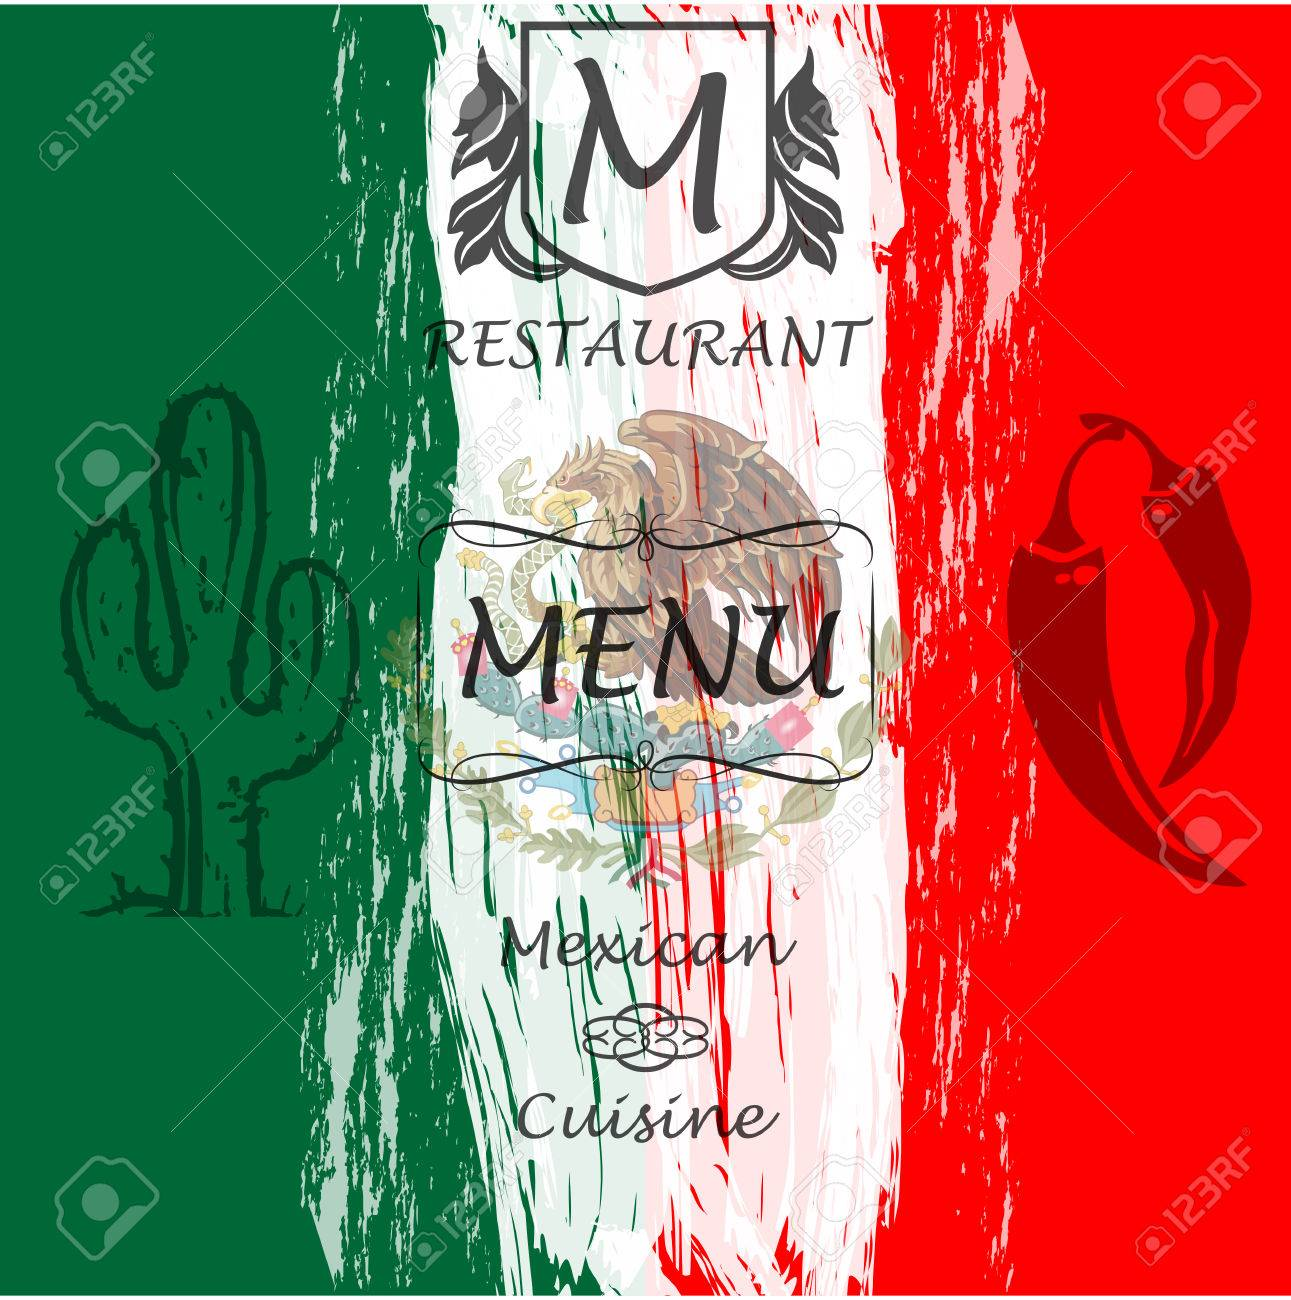 menu. cover for restaurants and cafes mexican cuisine. logo. royalty